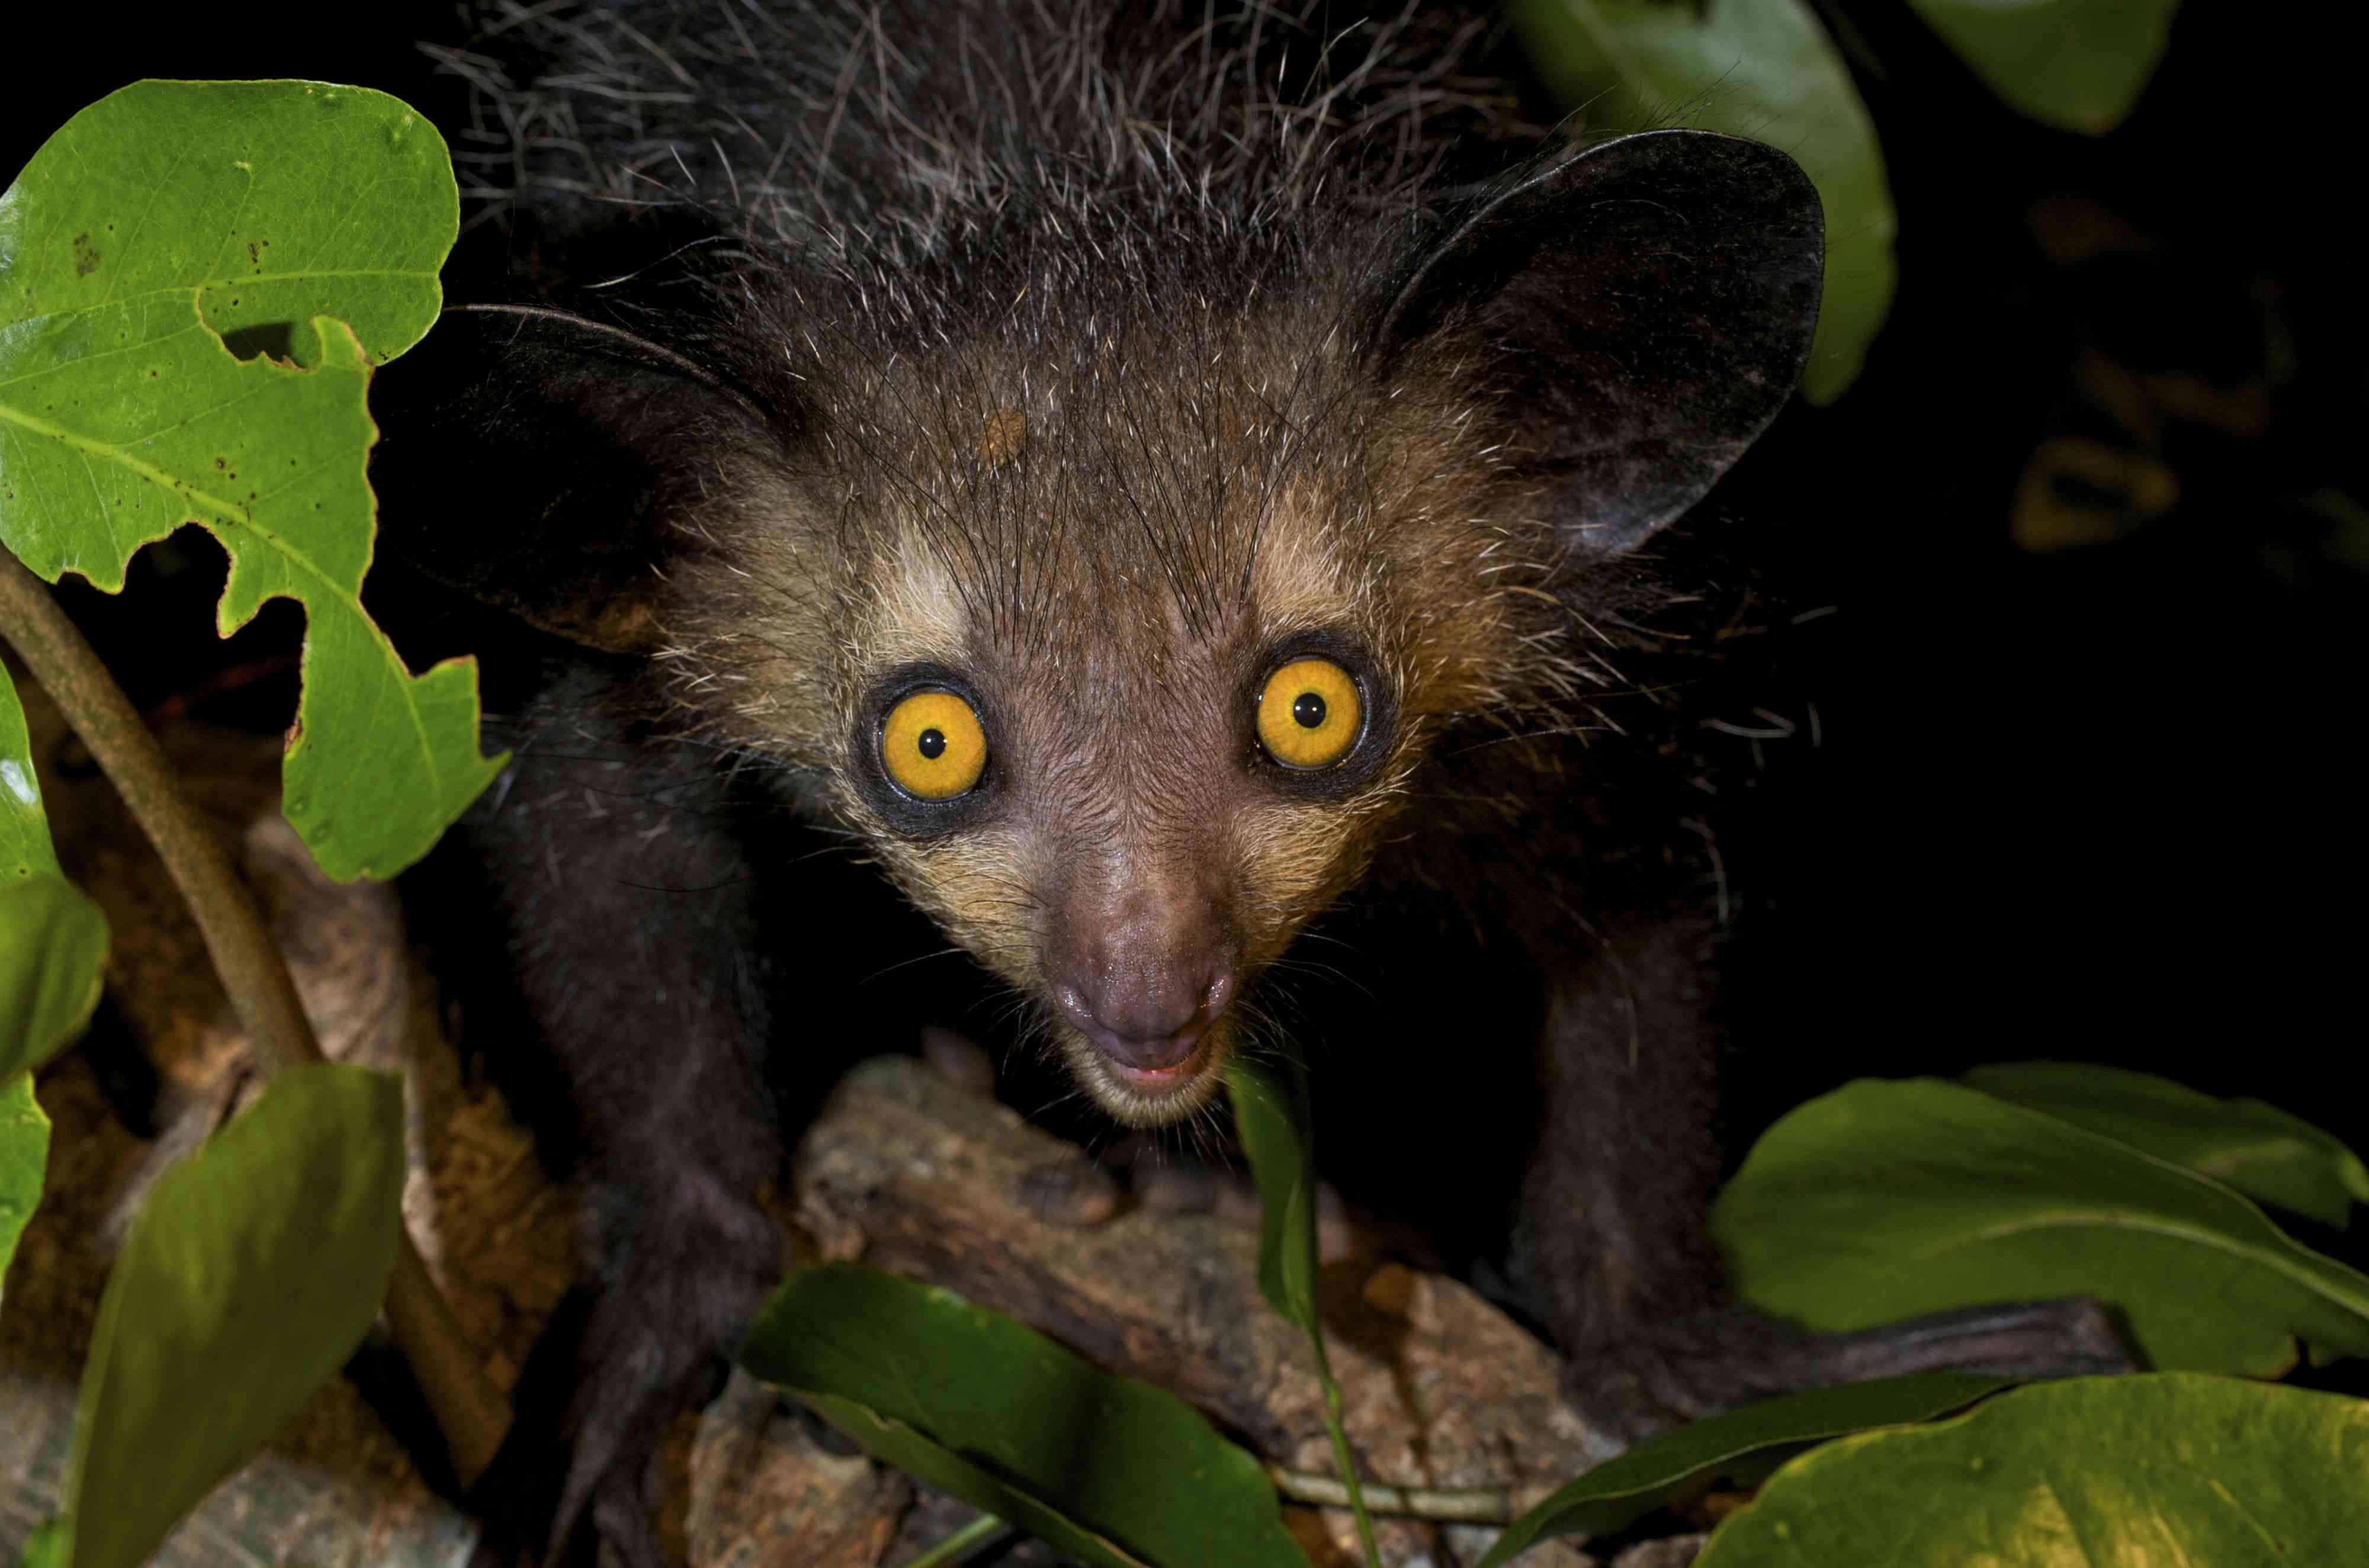 Aye-aye lemur with dark hair, big ears, big golden yellow eyes and pointy snout in tree